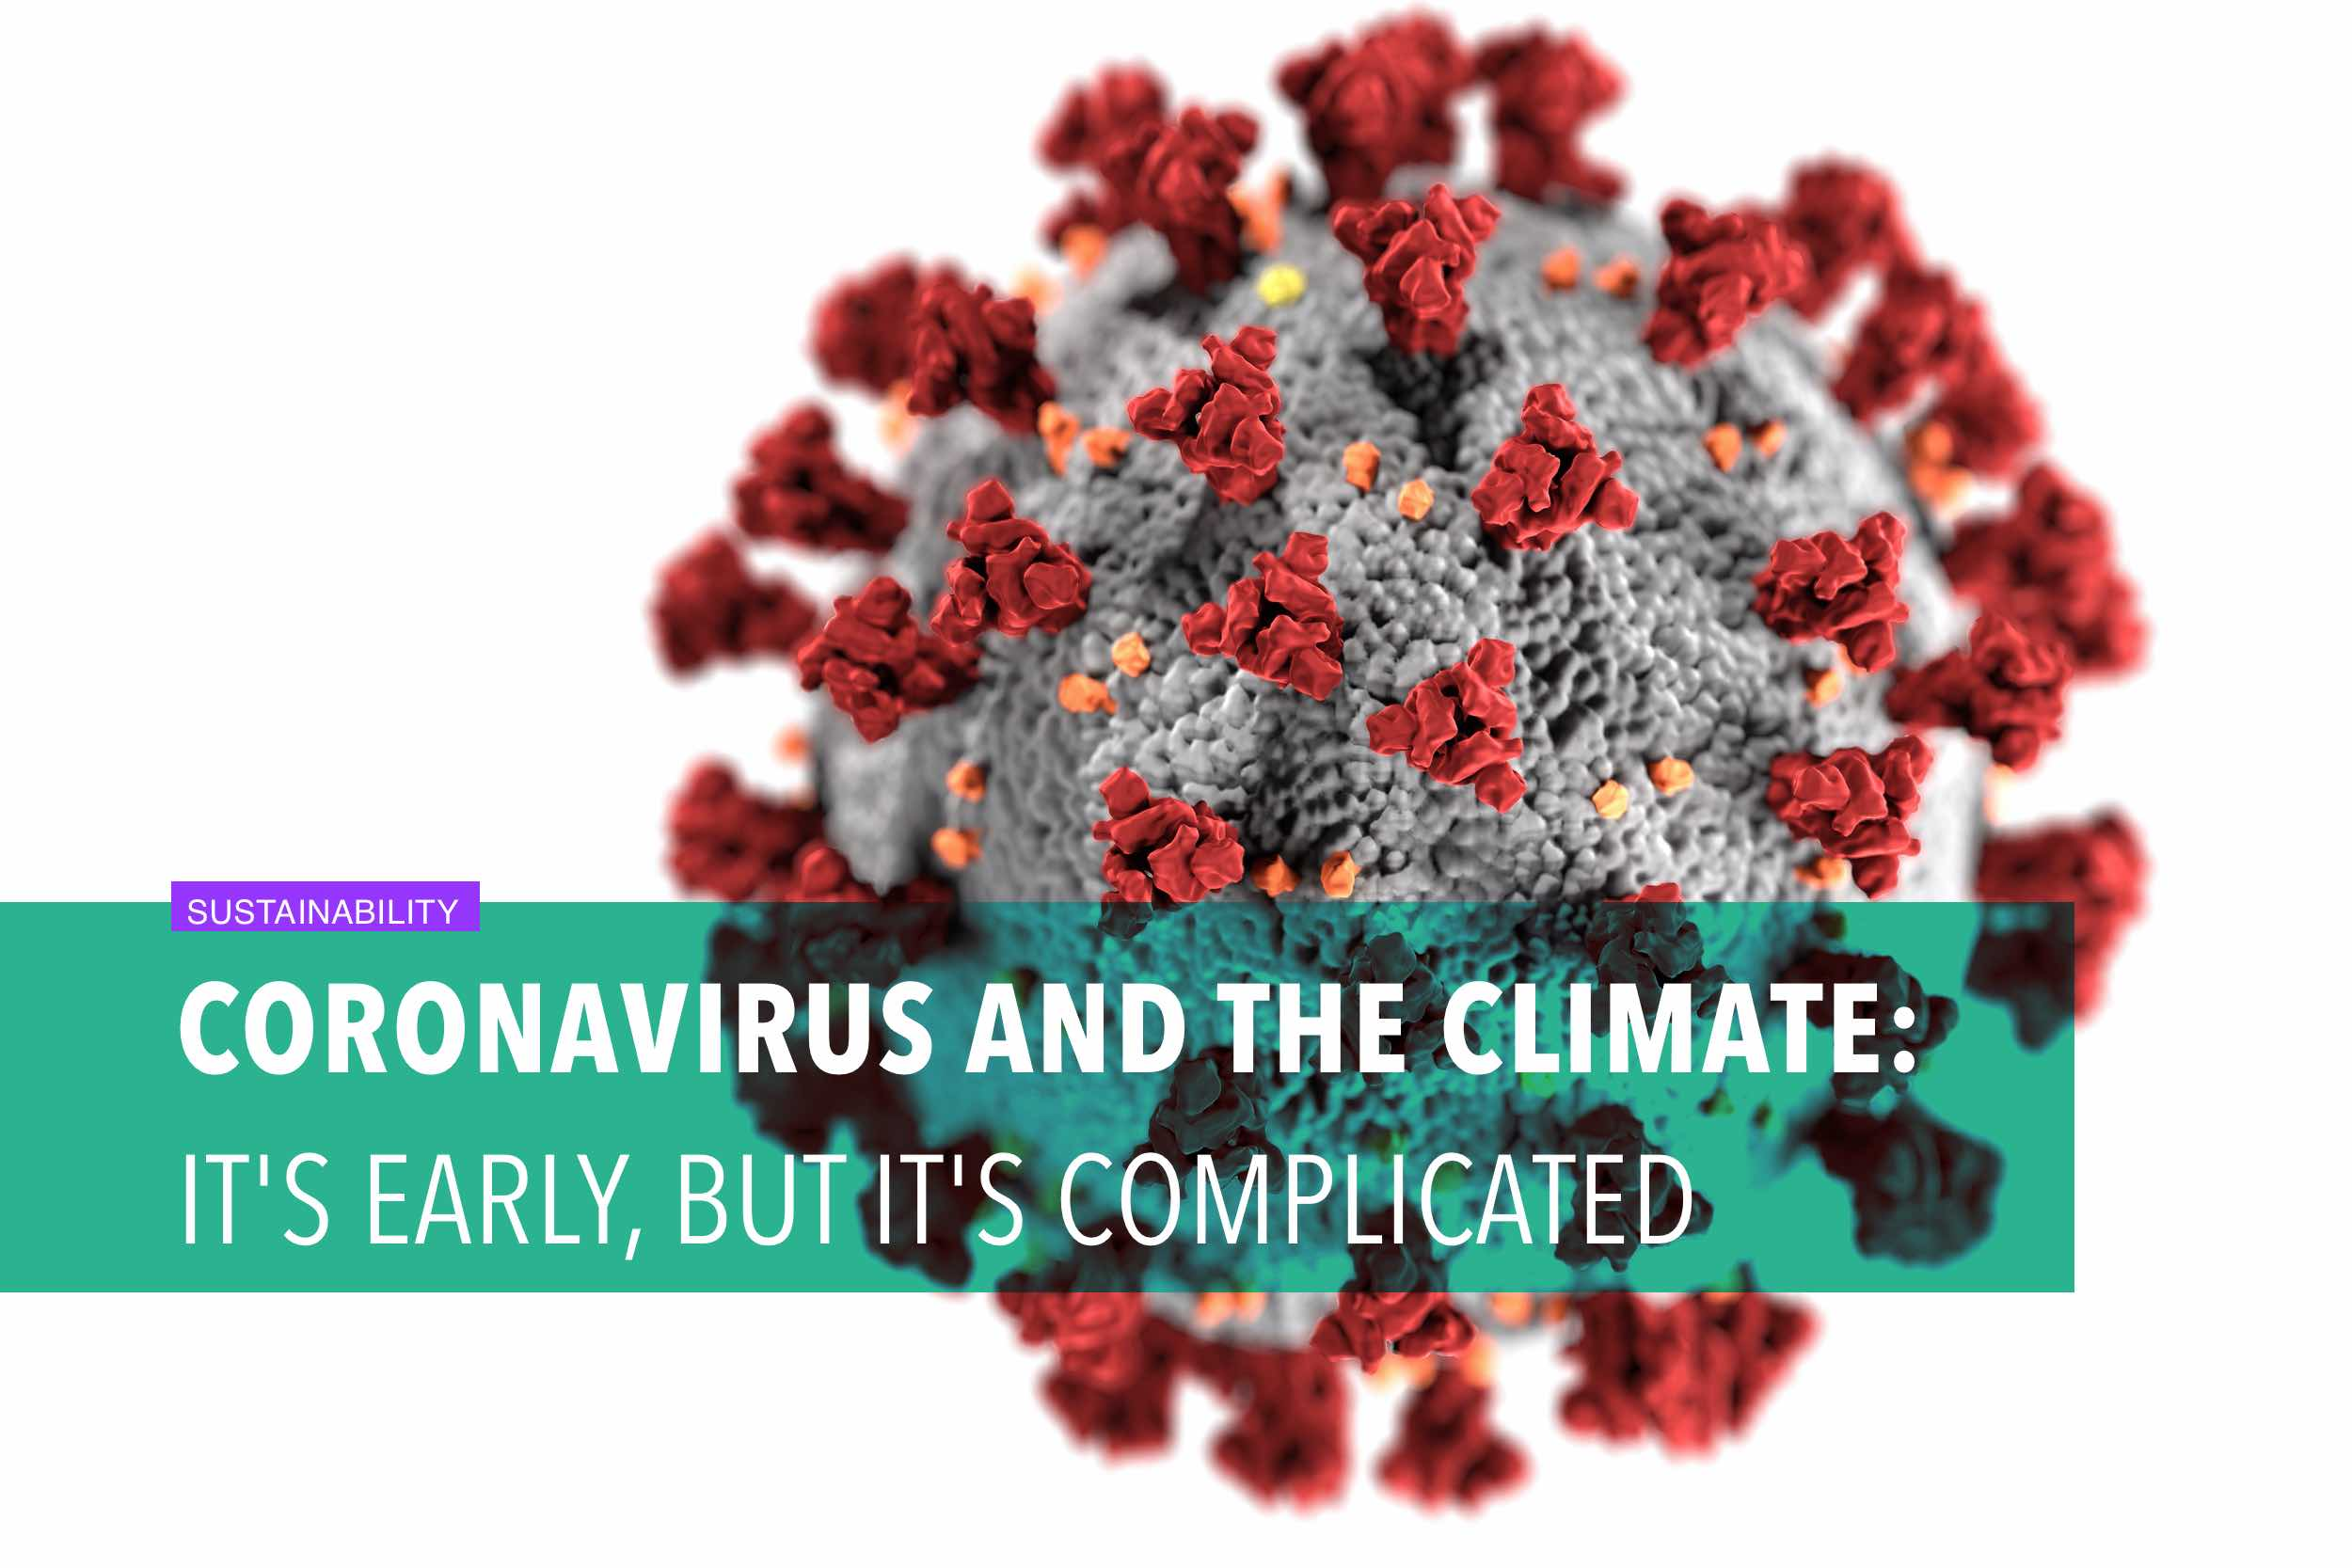 Coronavirus and the climate: It's early, but it's complicated